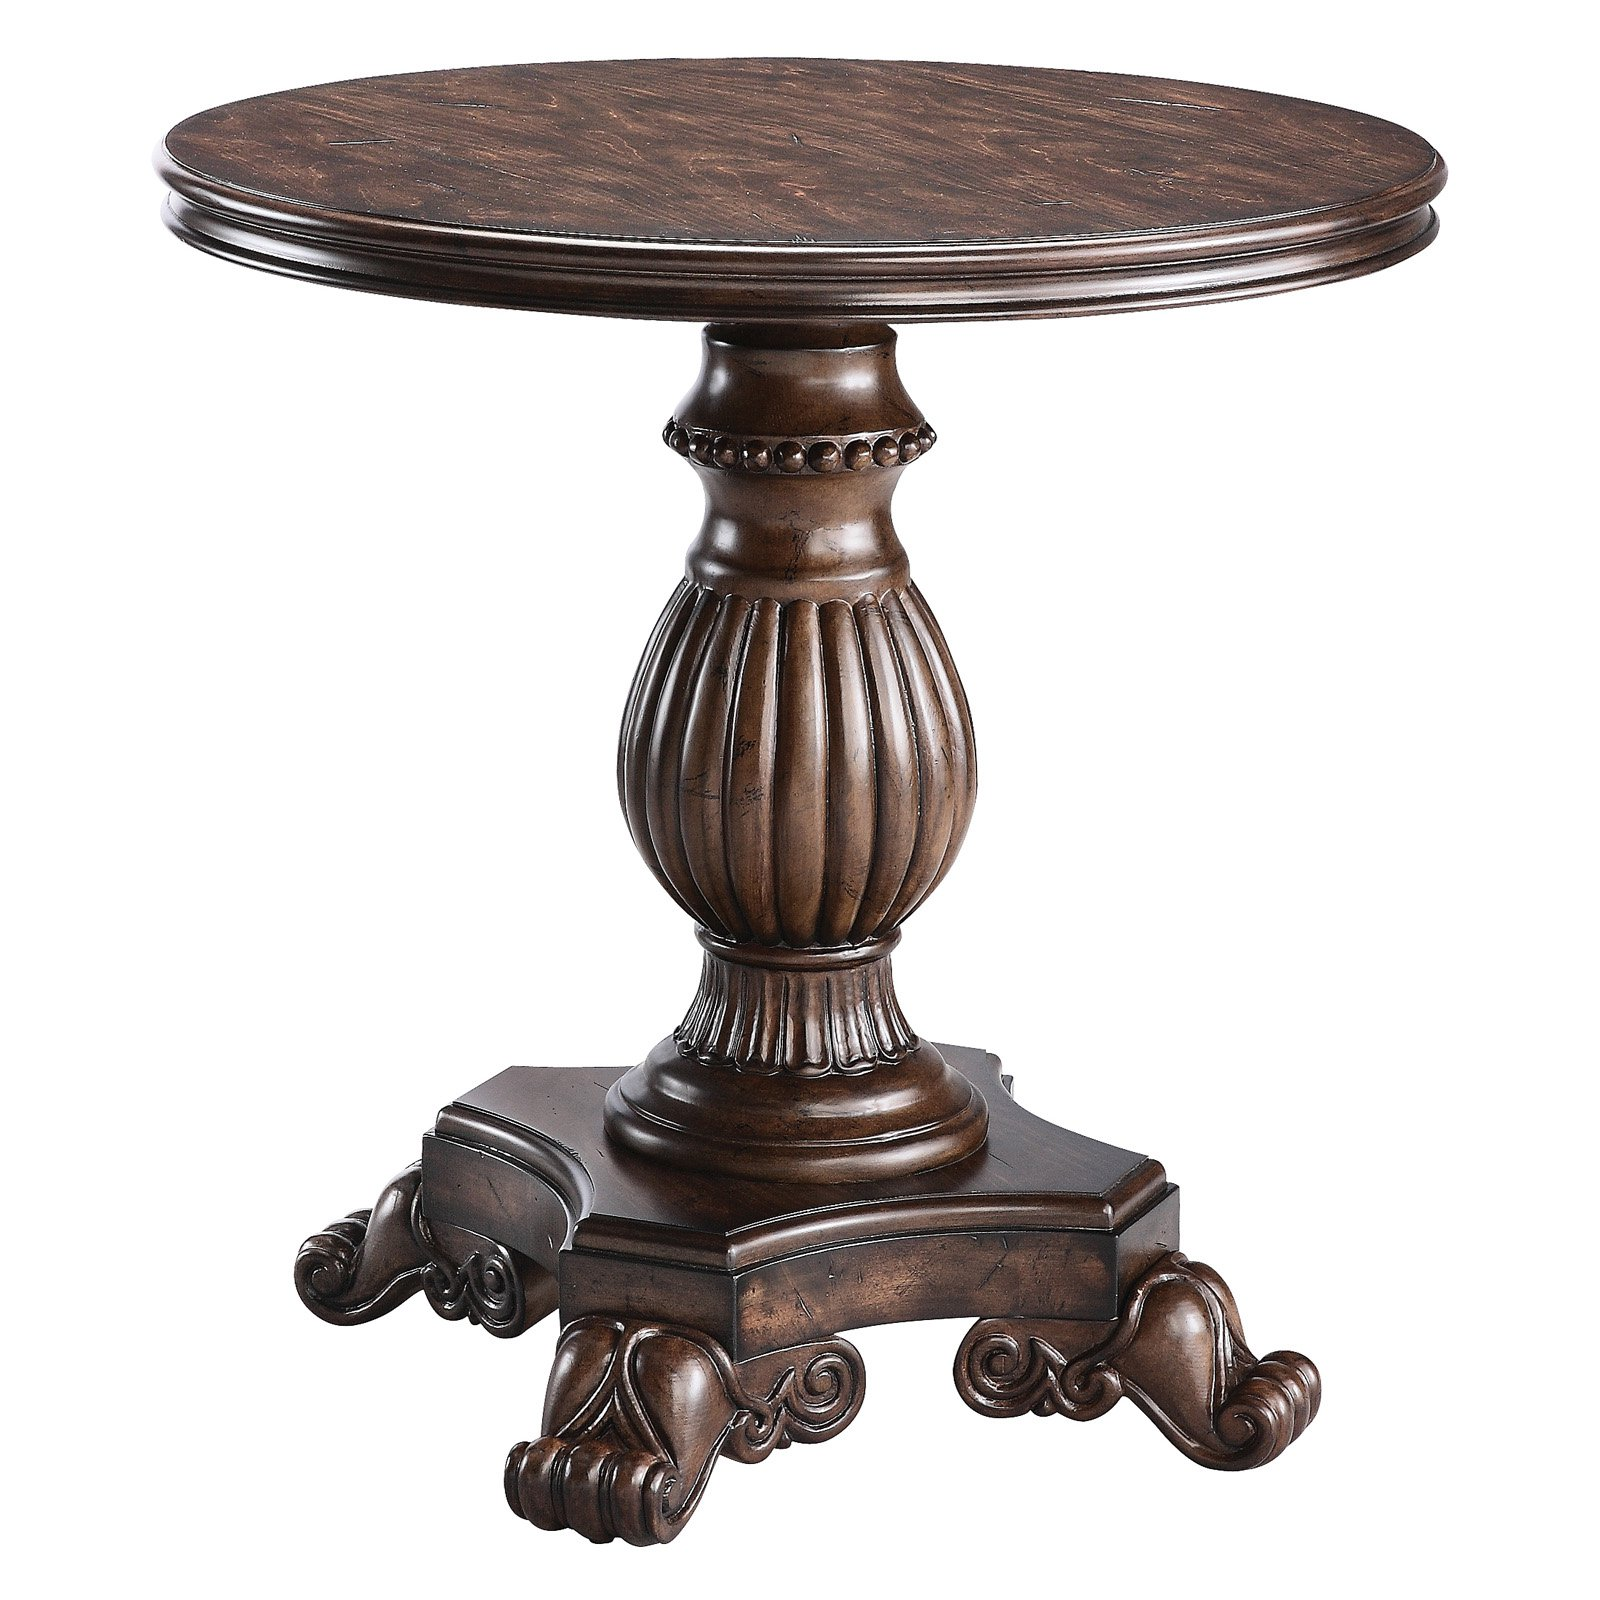 stein world round pedestal reclaimed table dark end half moon accent small west elm knock off mirror cube outdoor mosaic throne for drums butcher block island patio swing cover